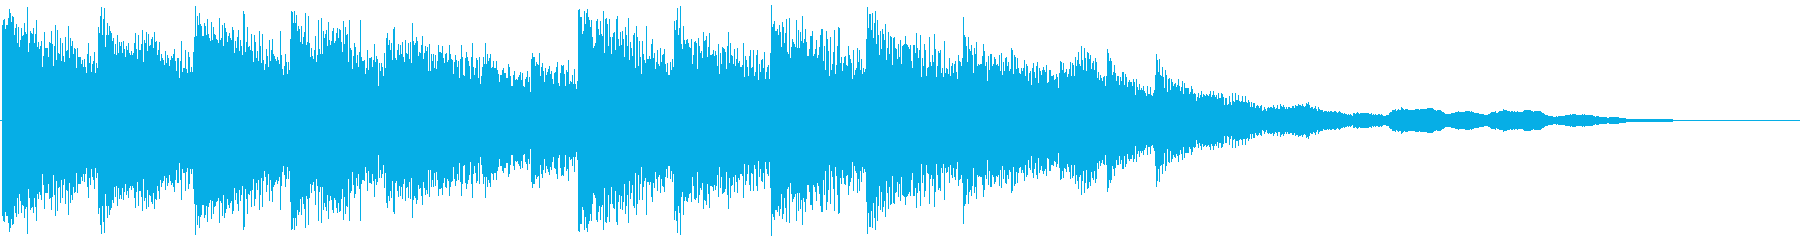 Cute fluffy synth jingle's reproduced waveform